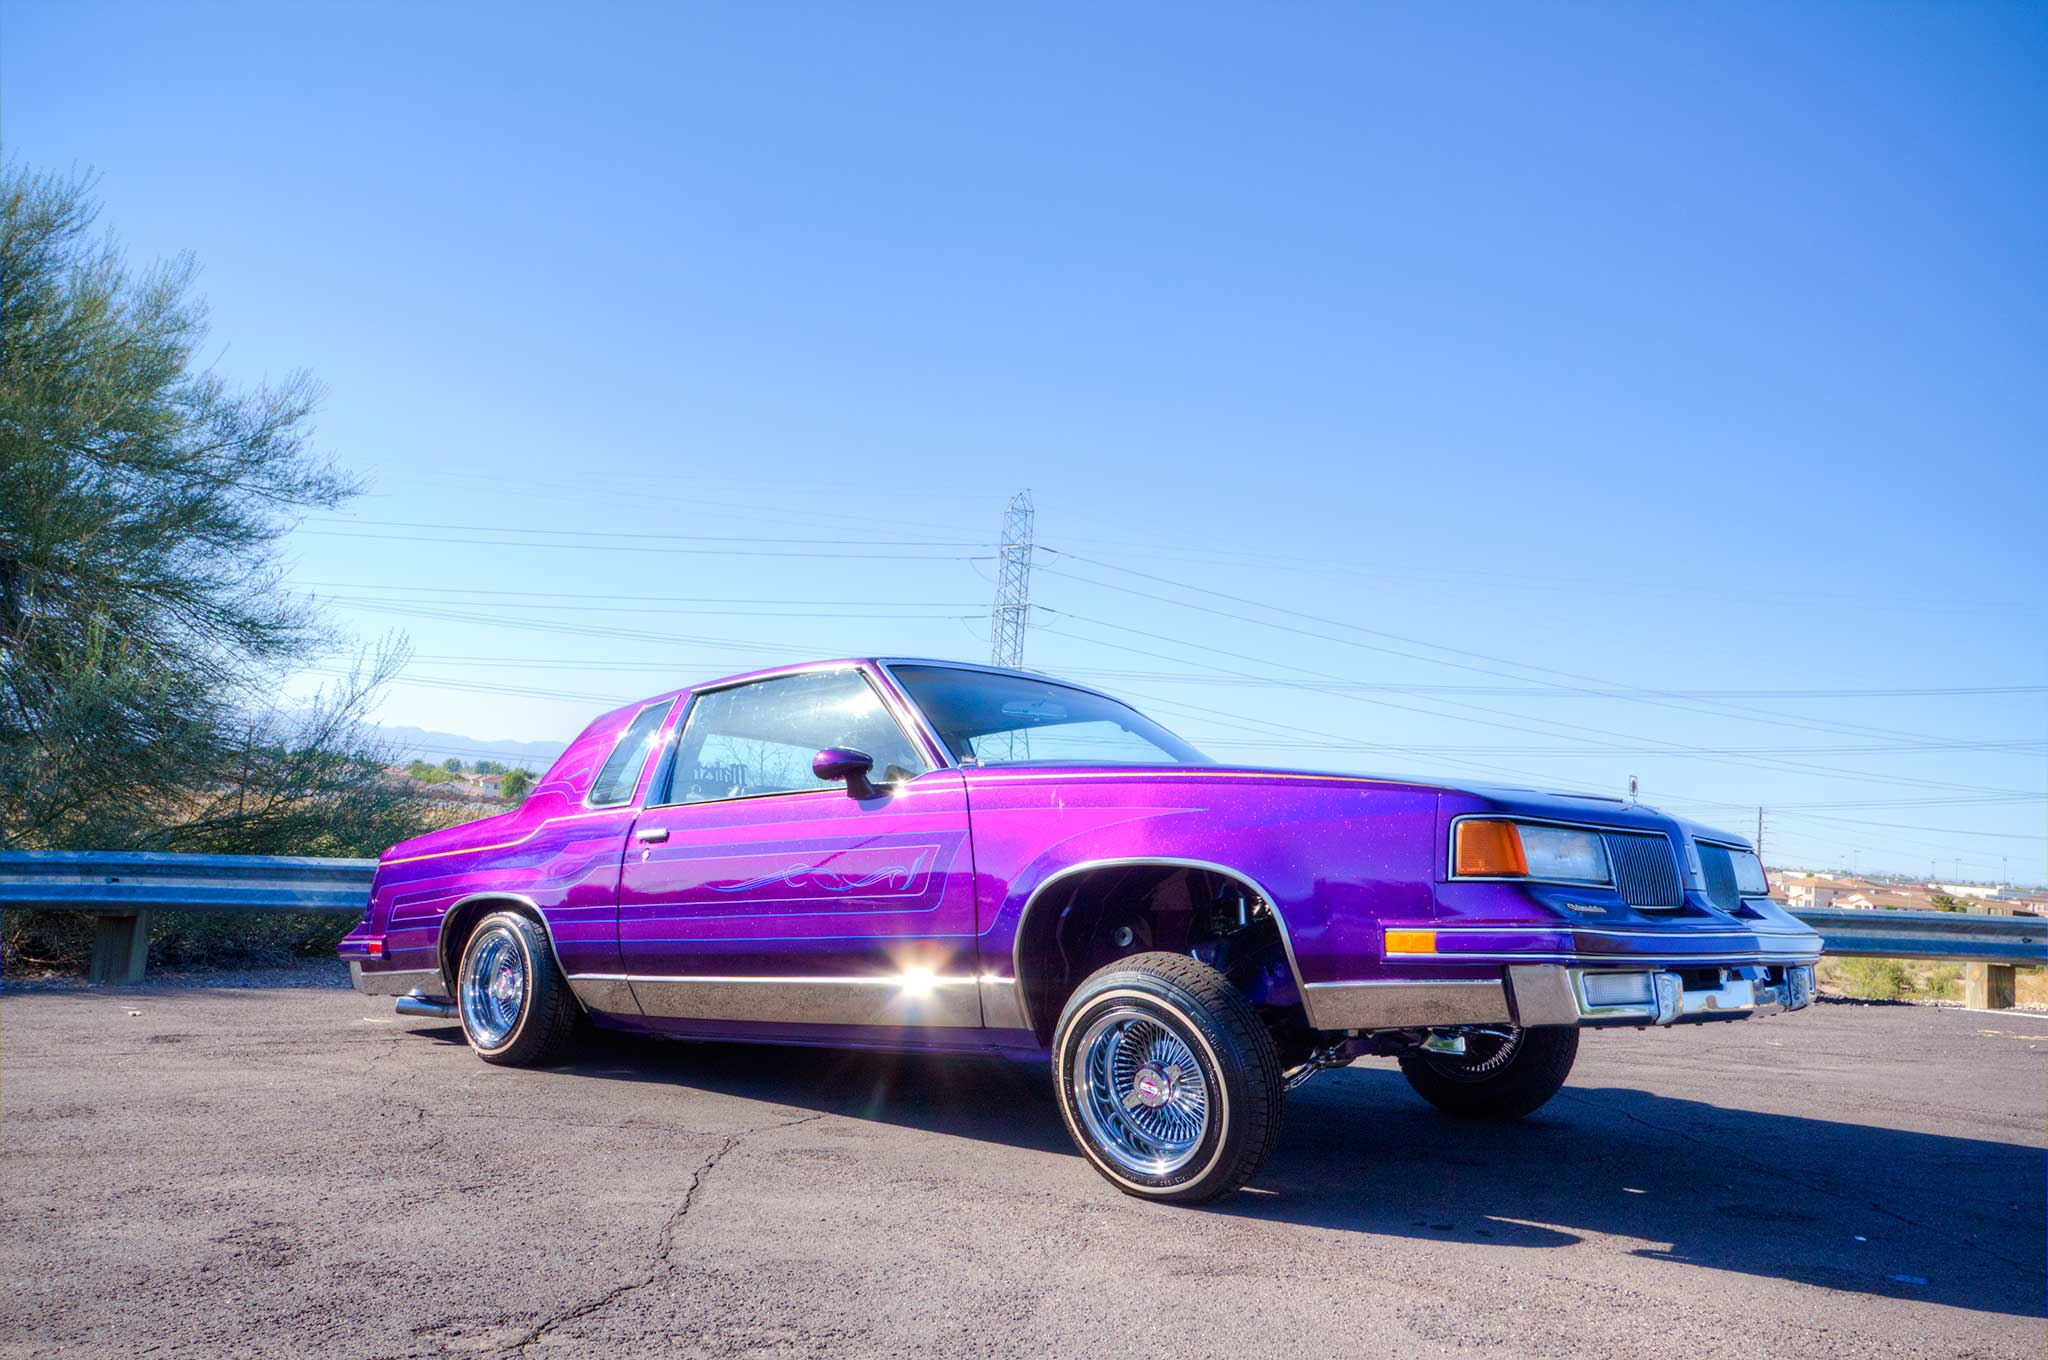 Lowrider Rims And Tires >> '93 Cadillac Fleetwood & '84 Oldsmobile Cutlass - The Game Don't Wait - Lowrider